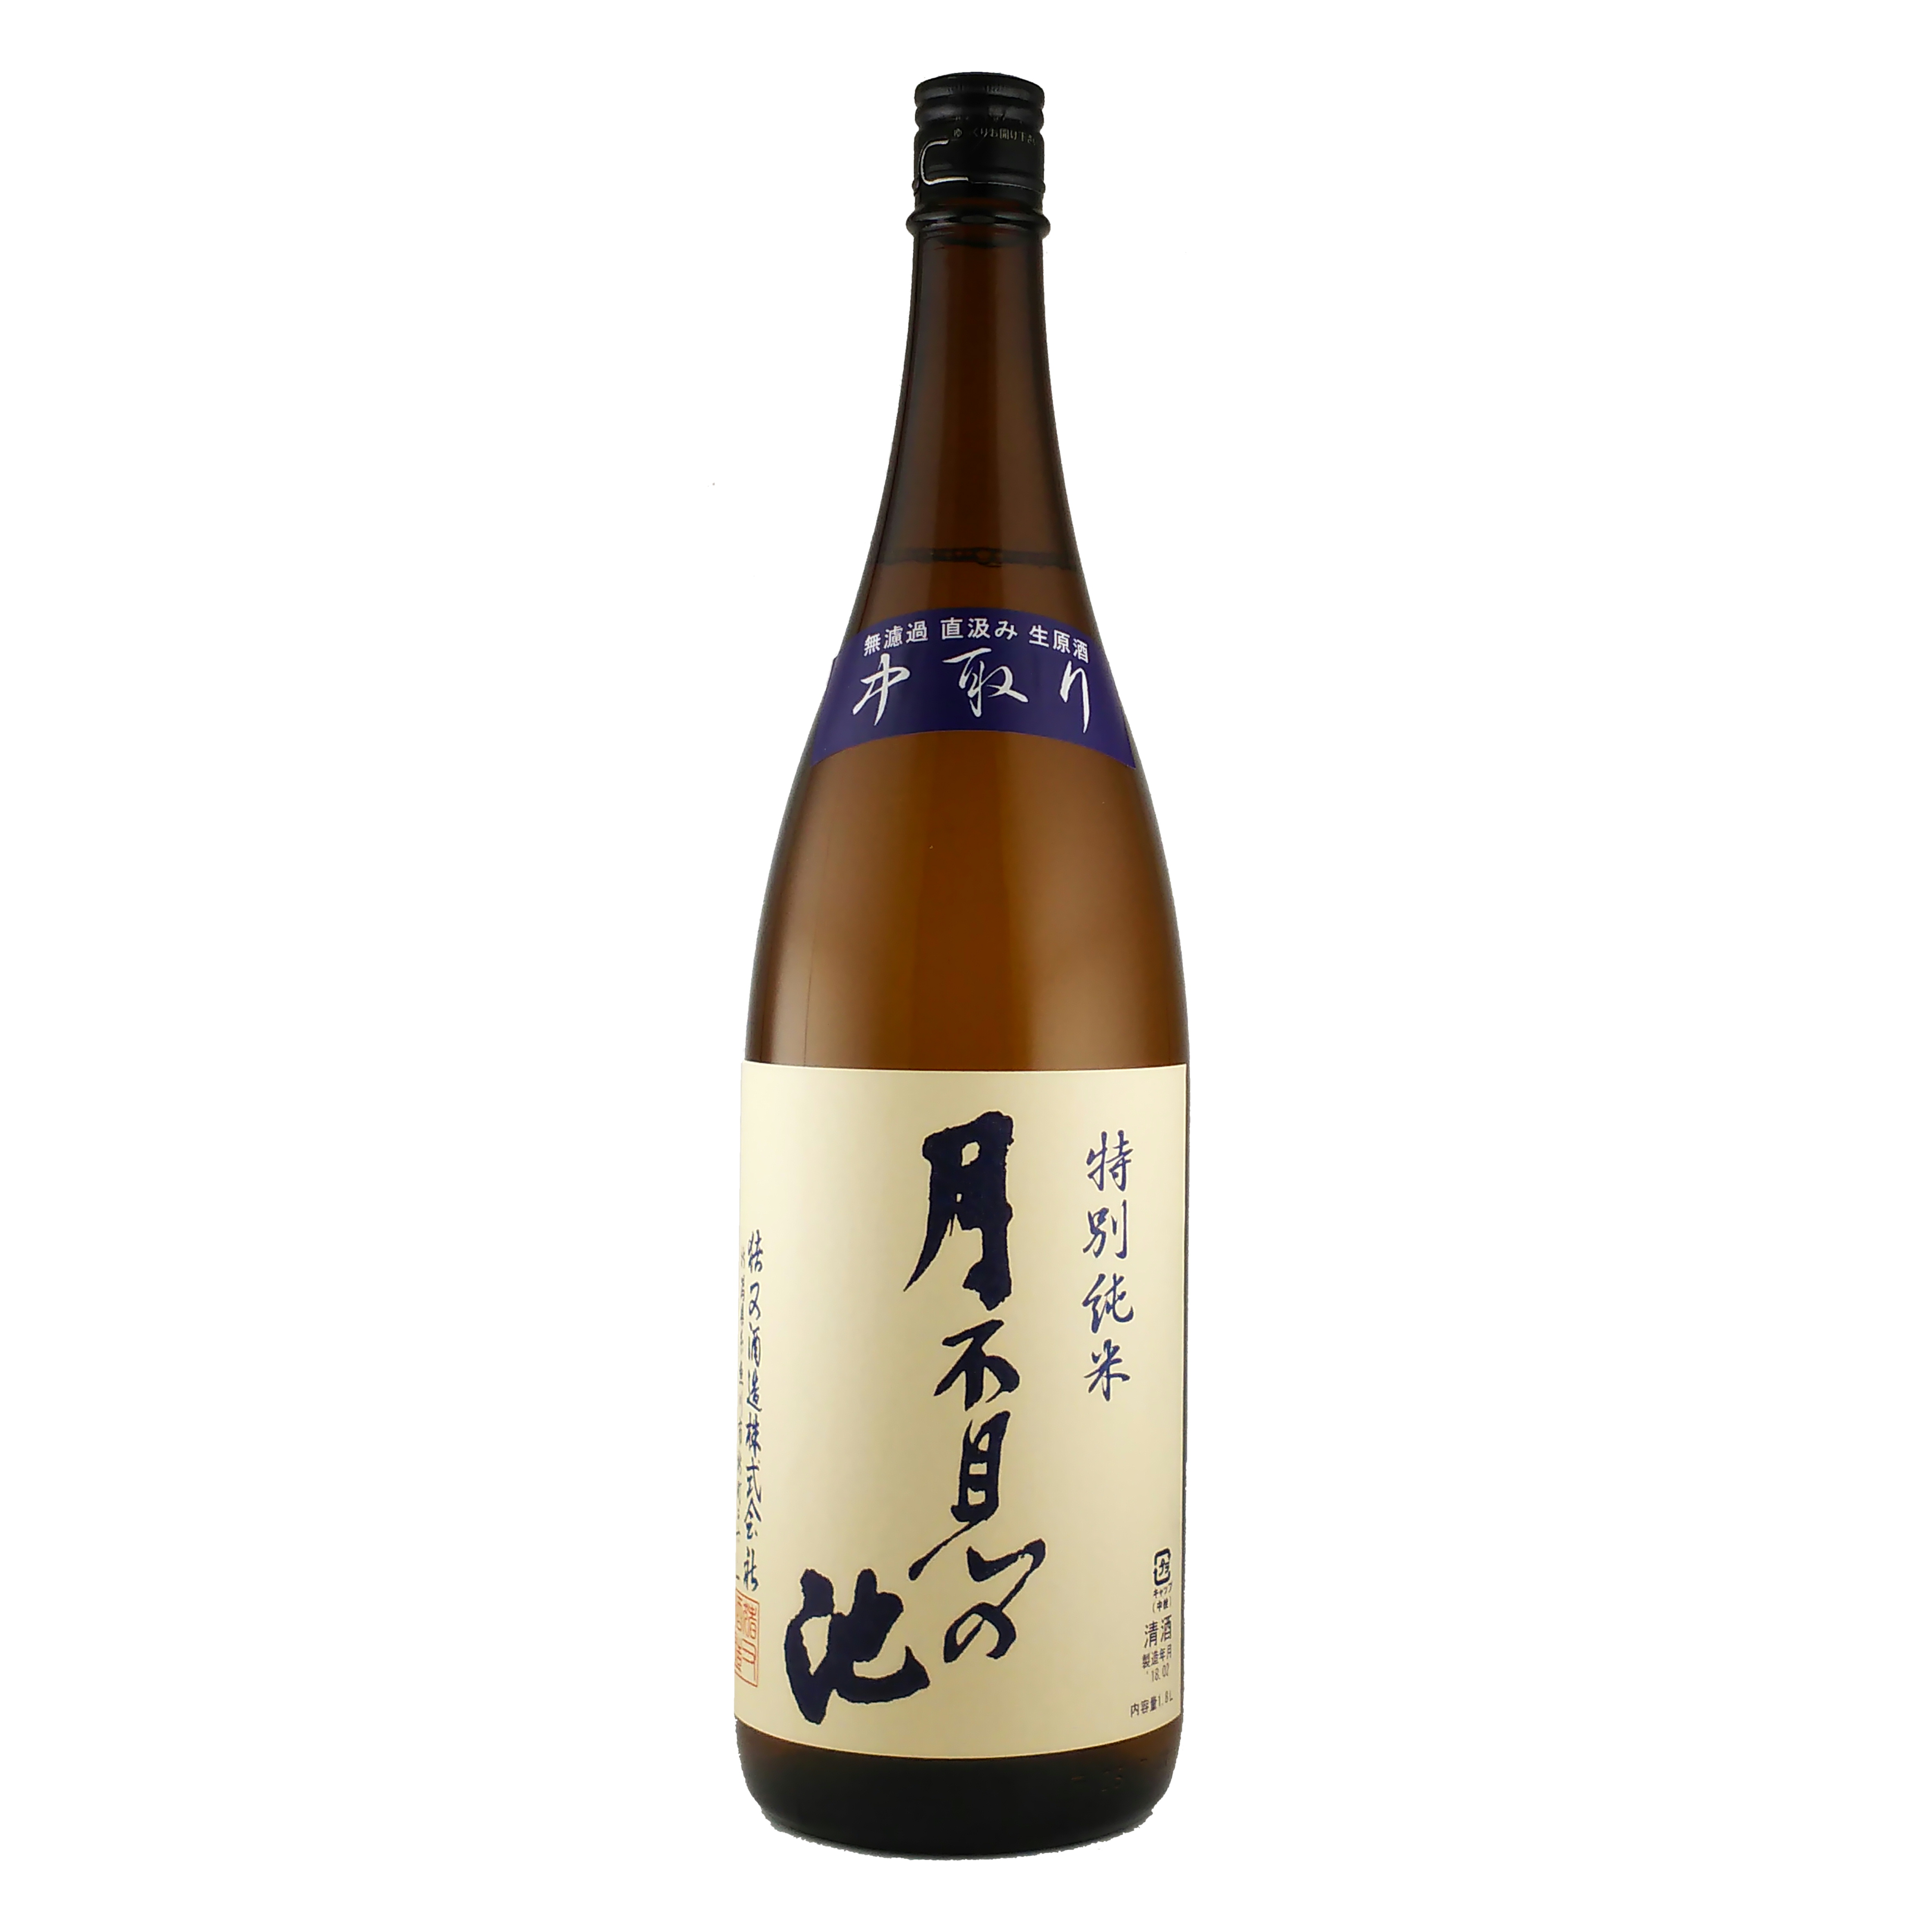 月不見の池 特別純米 中取直汲み 生原酒 1800ml